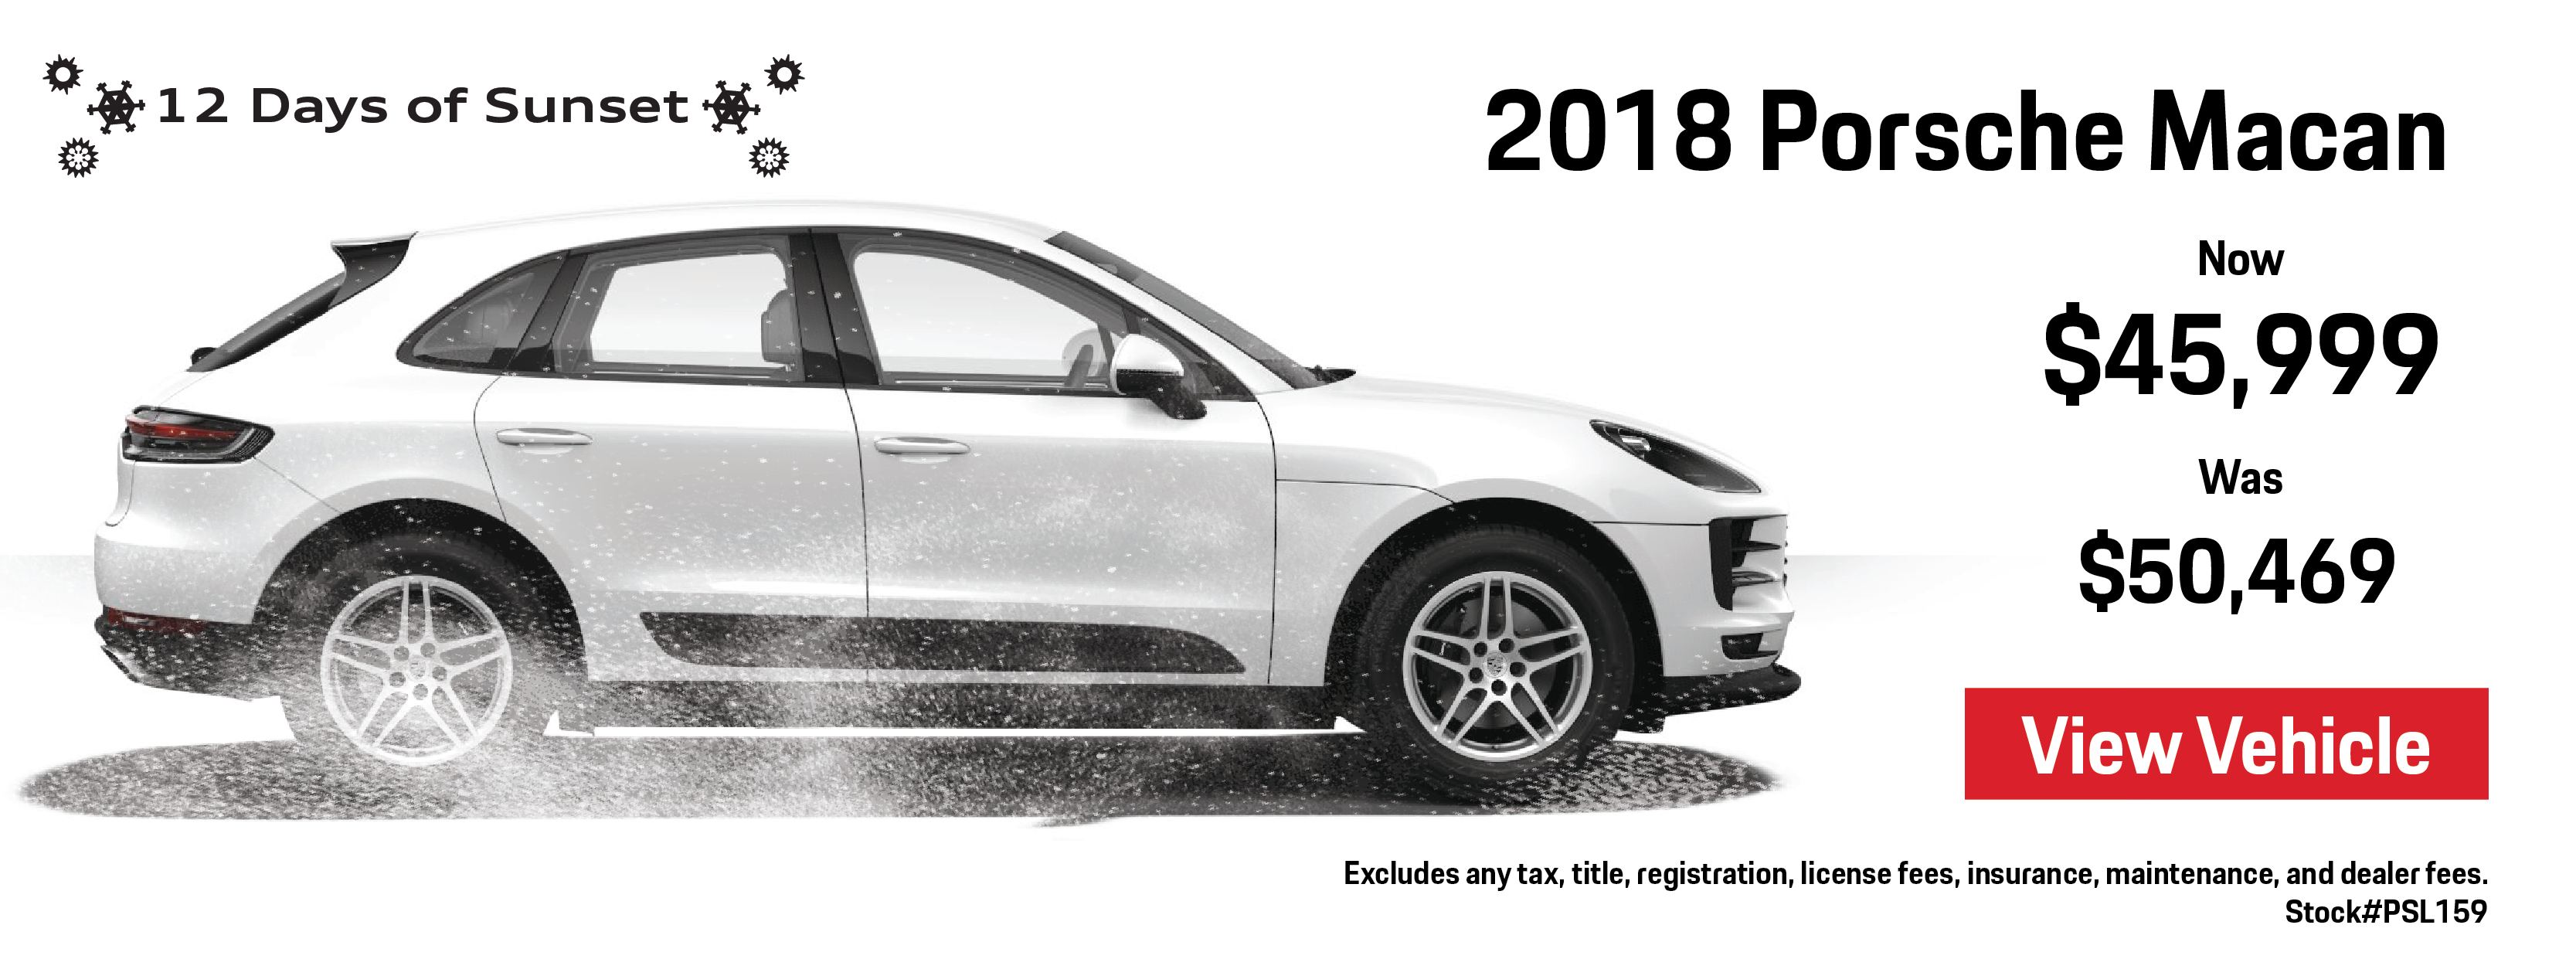 12 Days of Sunset   Day 12   Additional 2018 Macan Savings   Now $45,999 Was $50,469   View Details